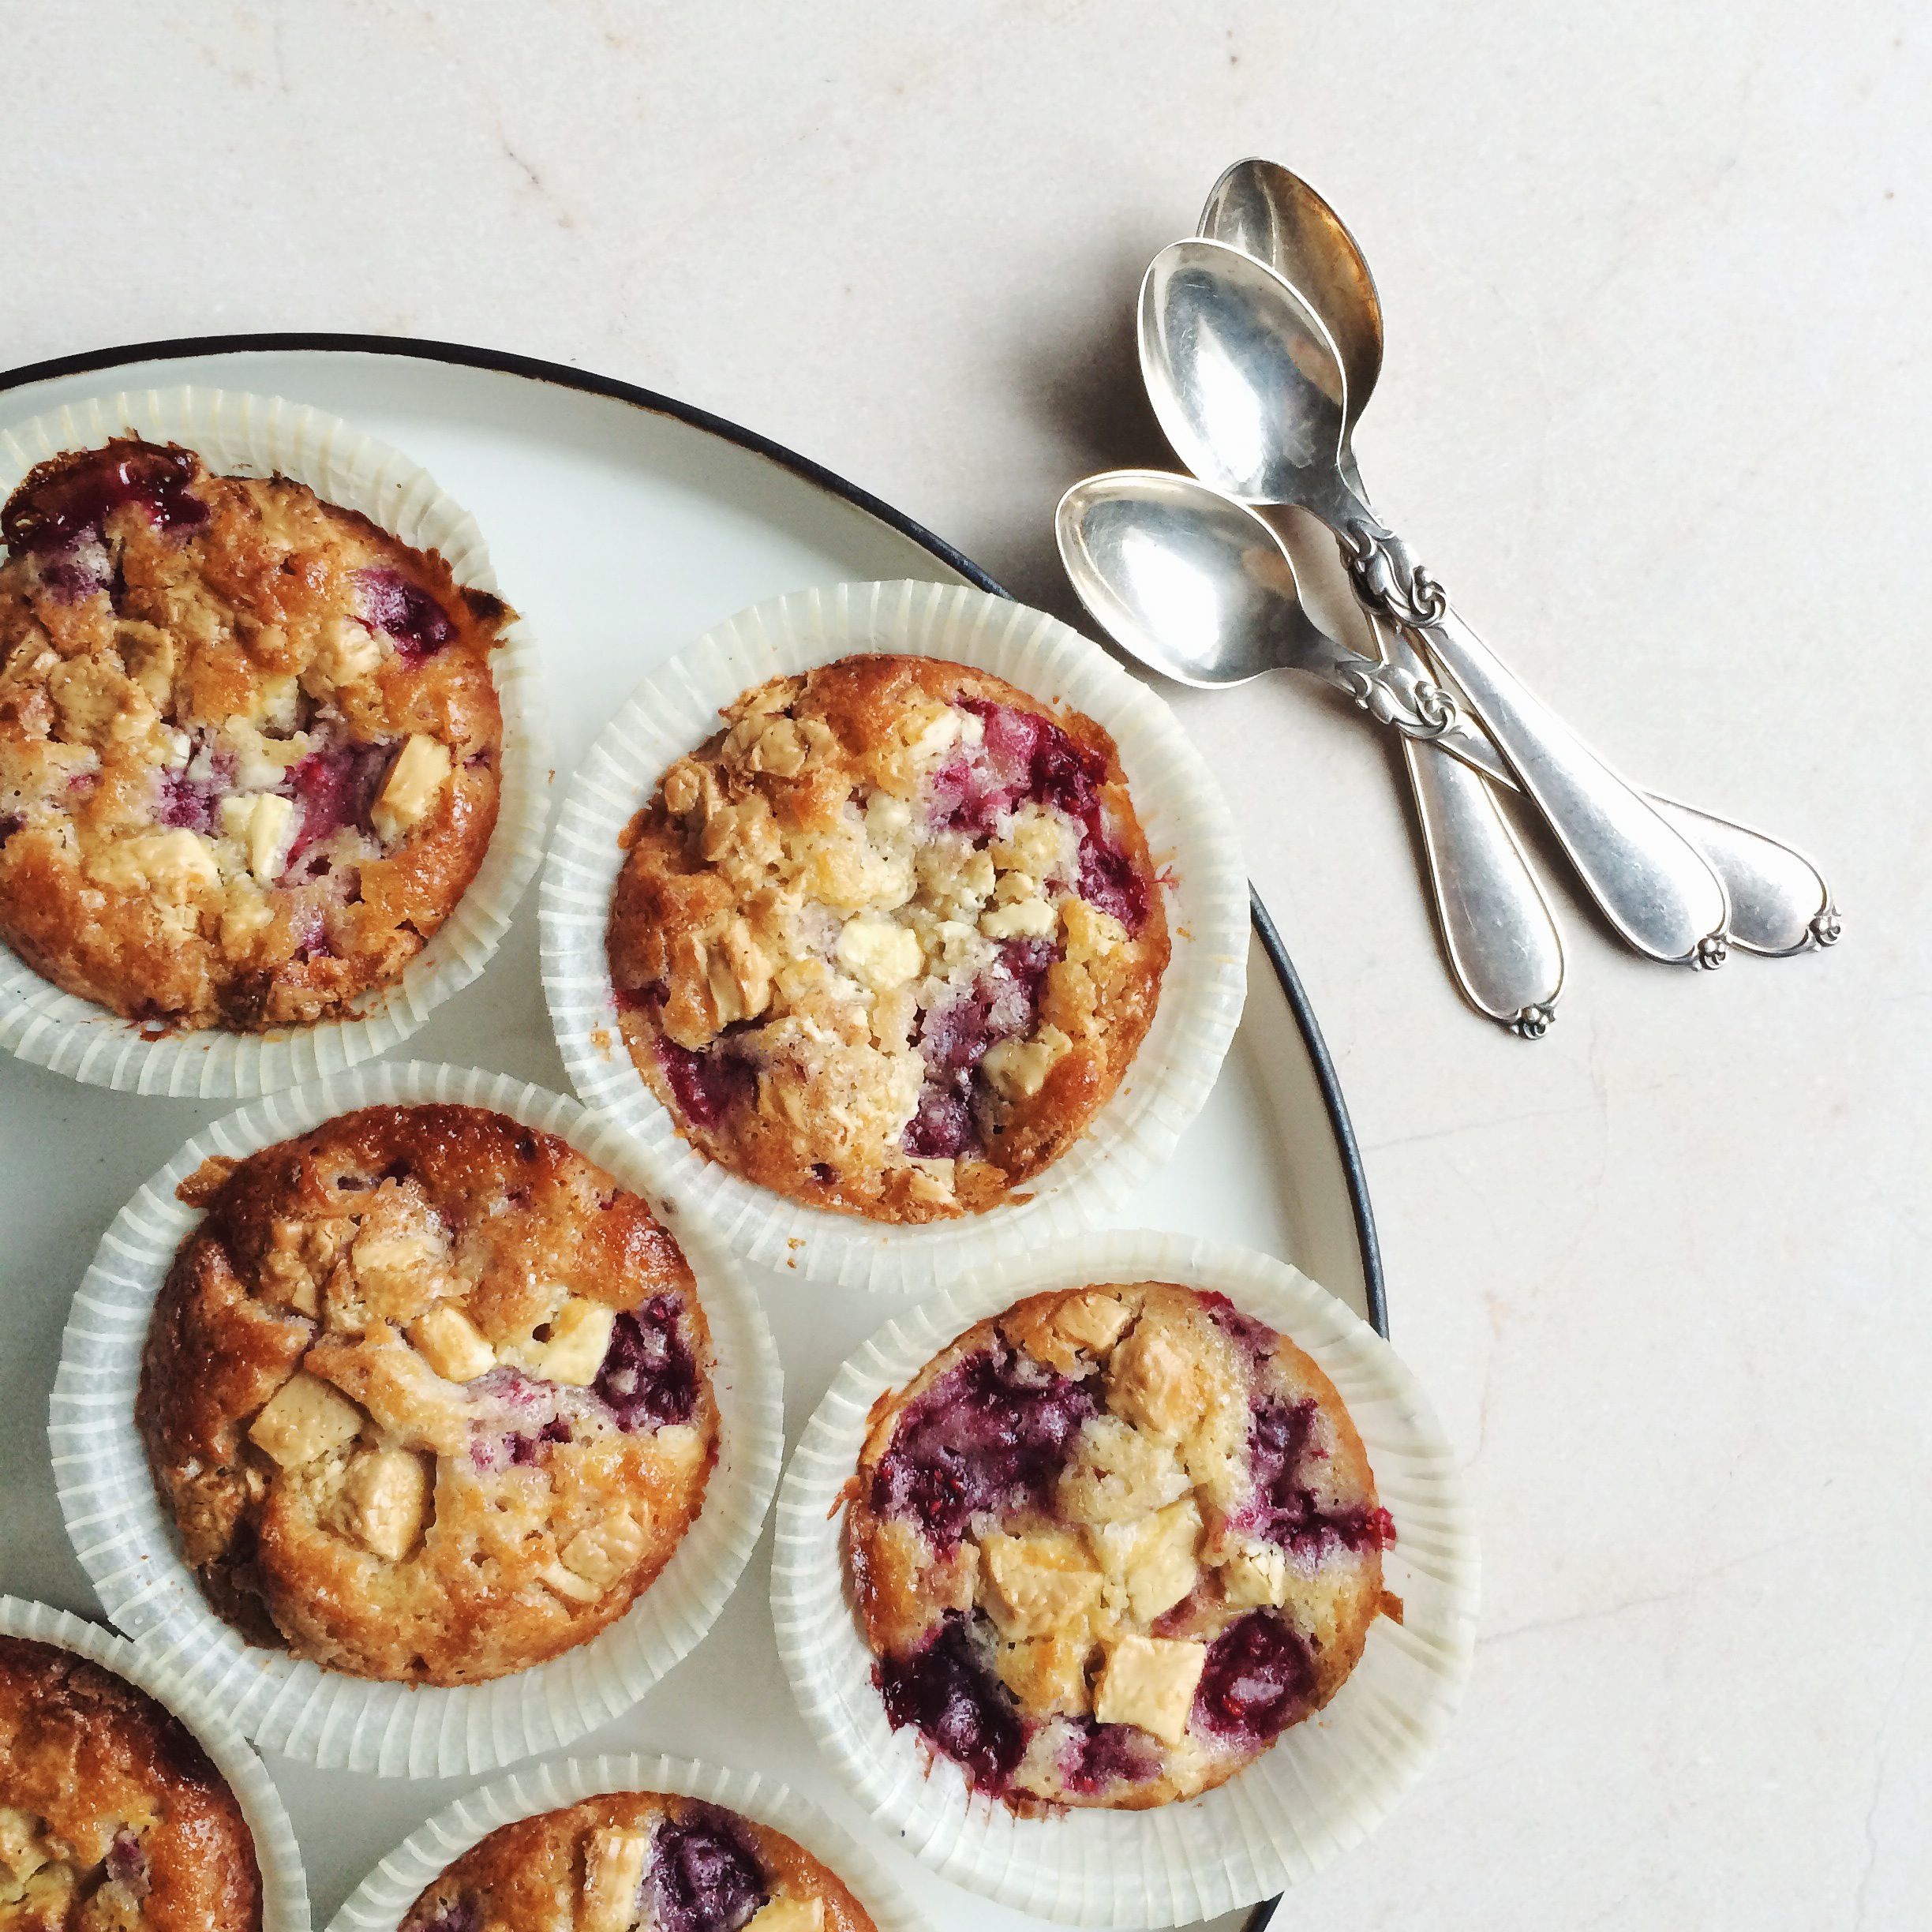 Muffins with raspberries and white chocolate